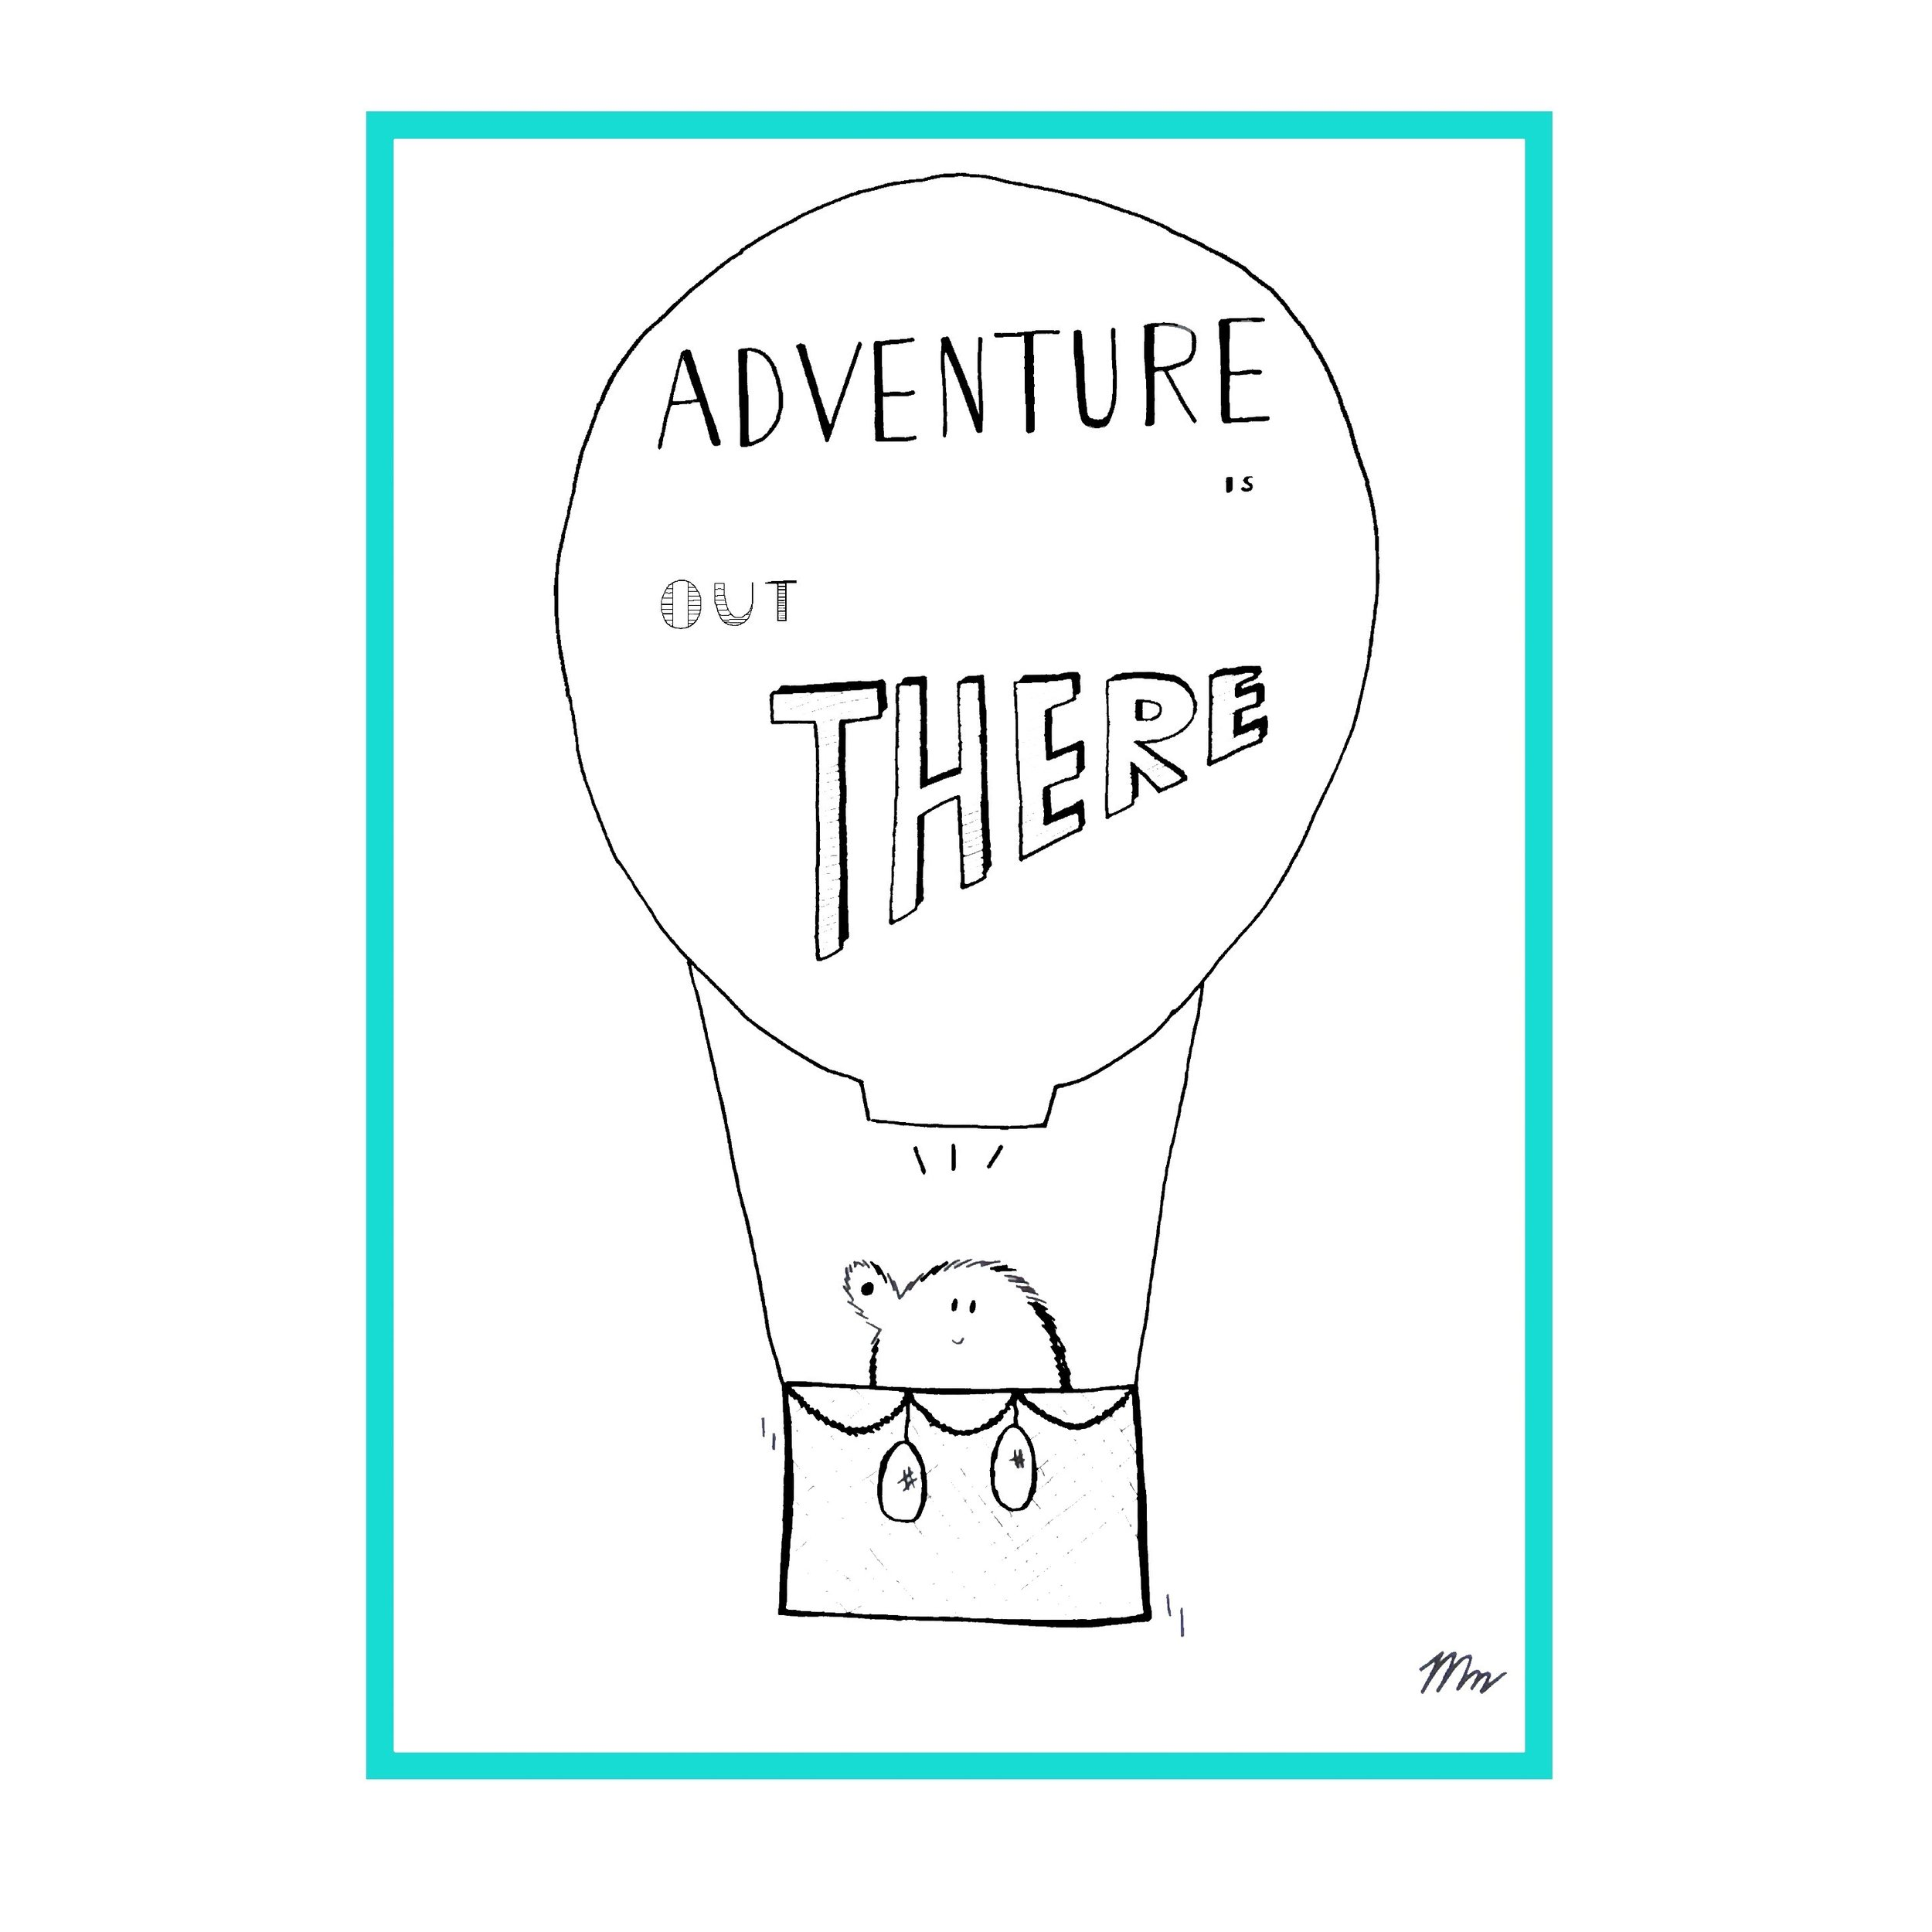 adventure is out there_furry friend_art studio jet.jpg